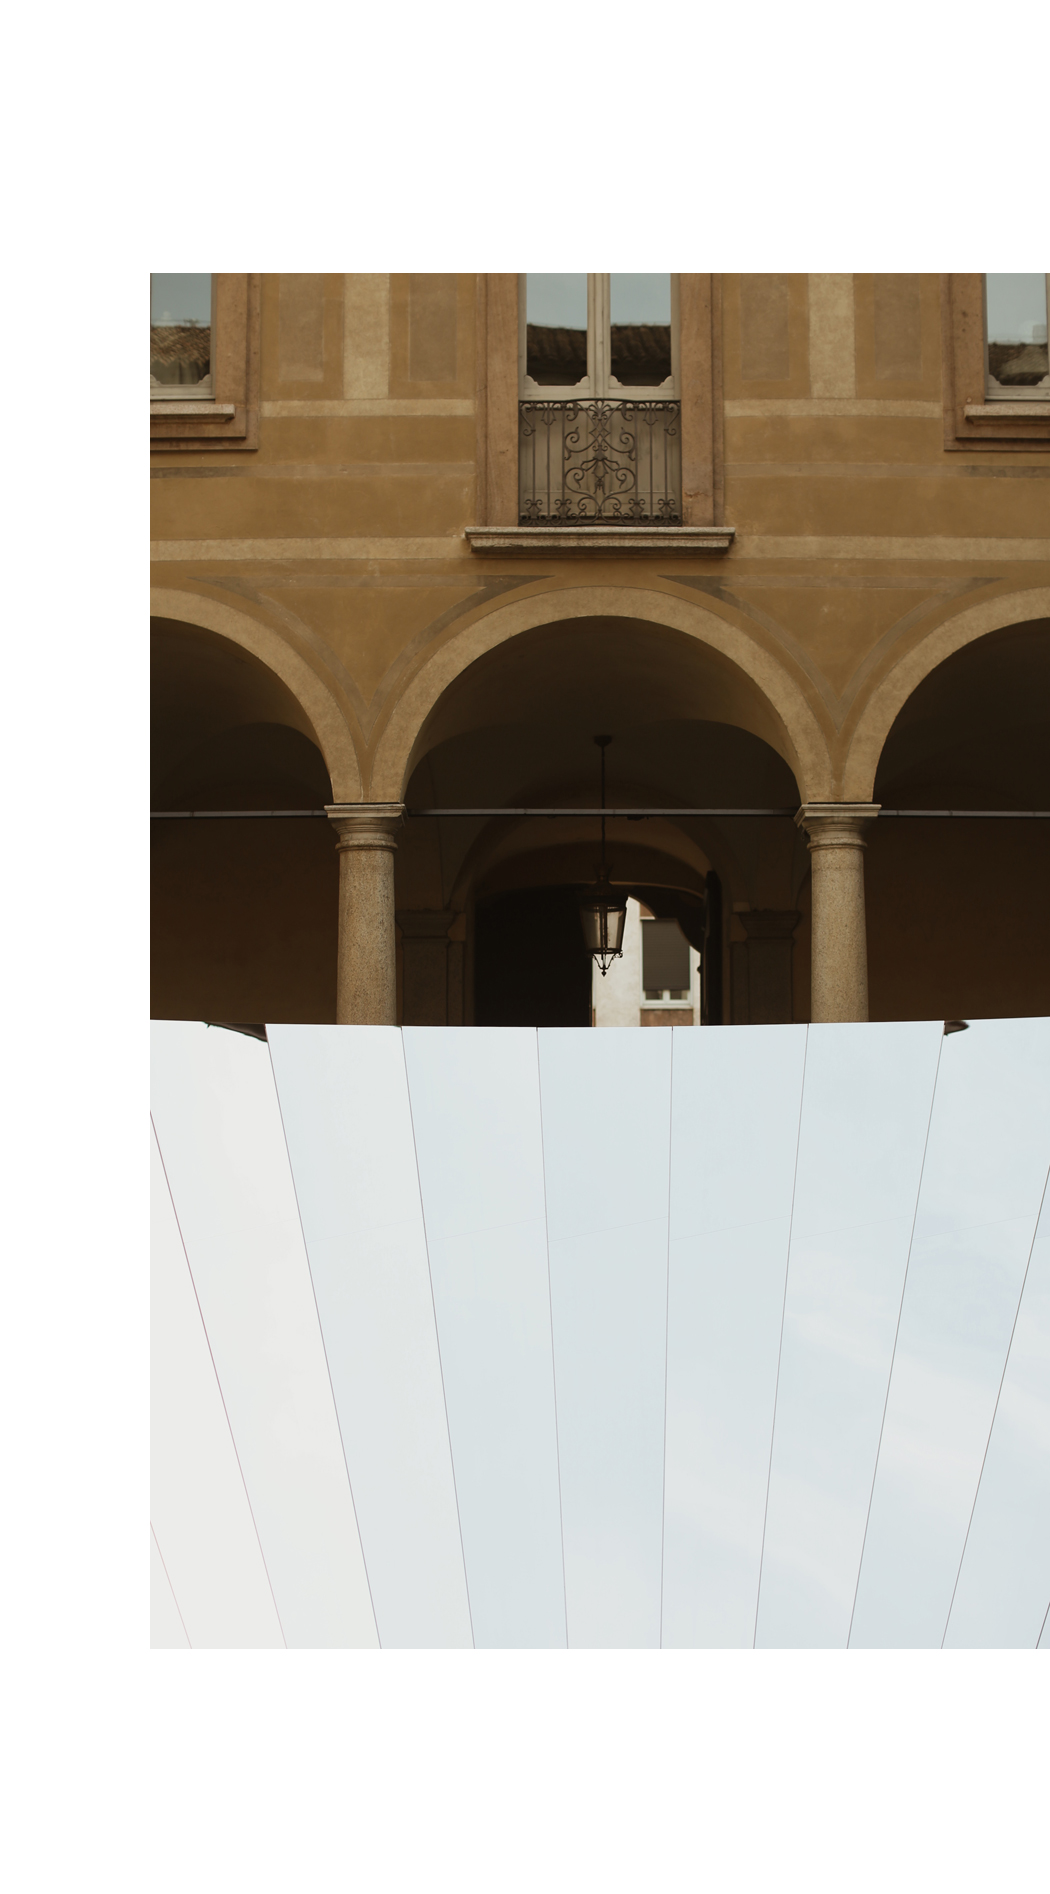 COS x PHILLIP K SMITH III Open Sky Palazzo Isimbardi Milan